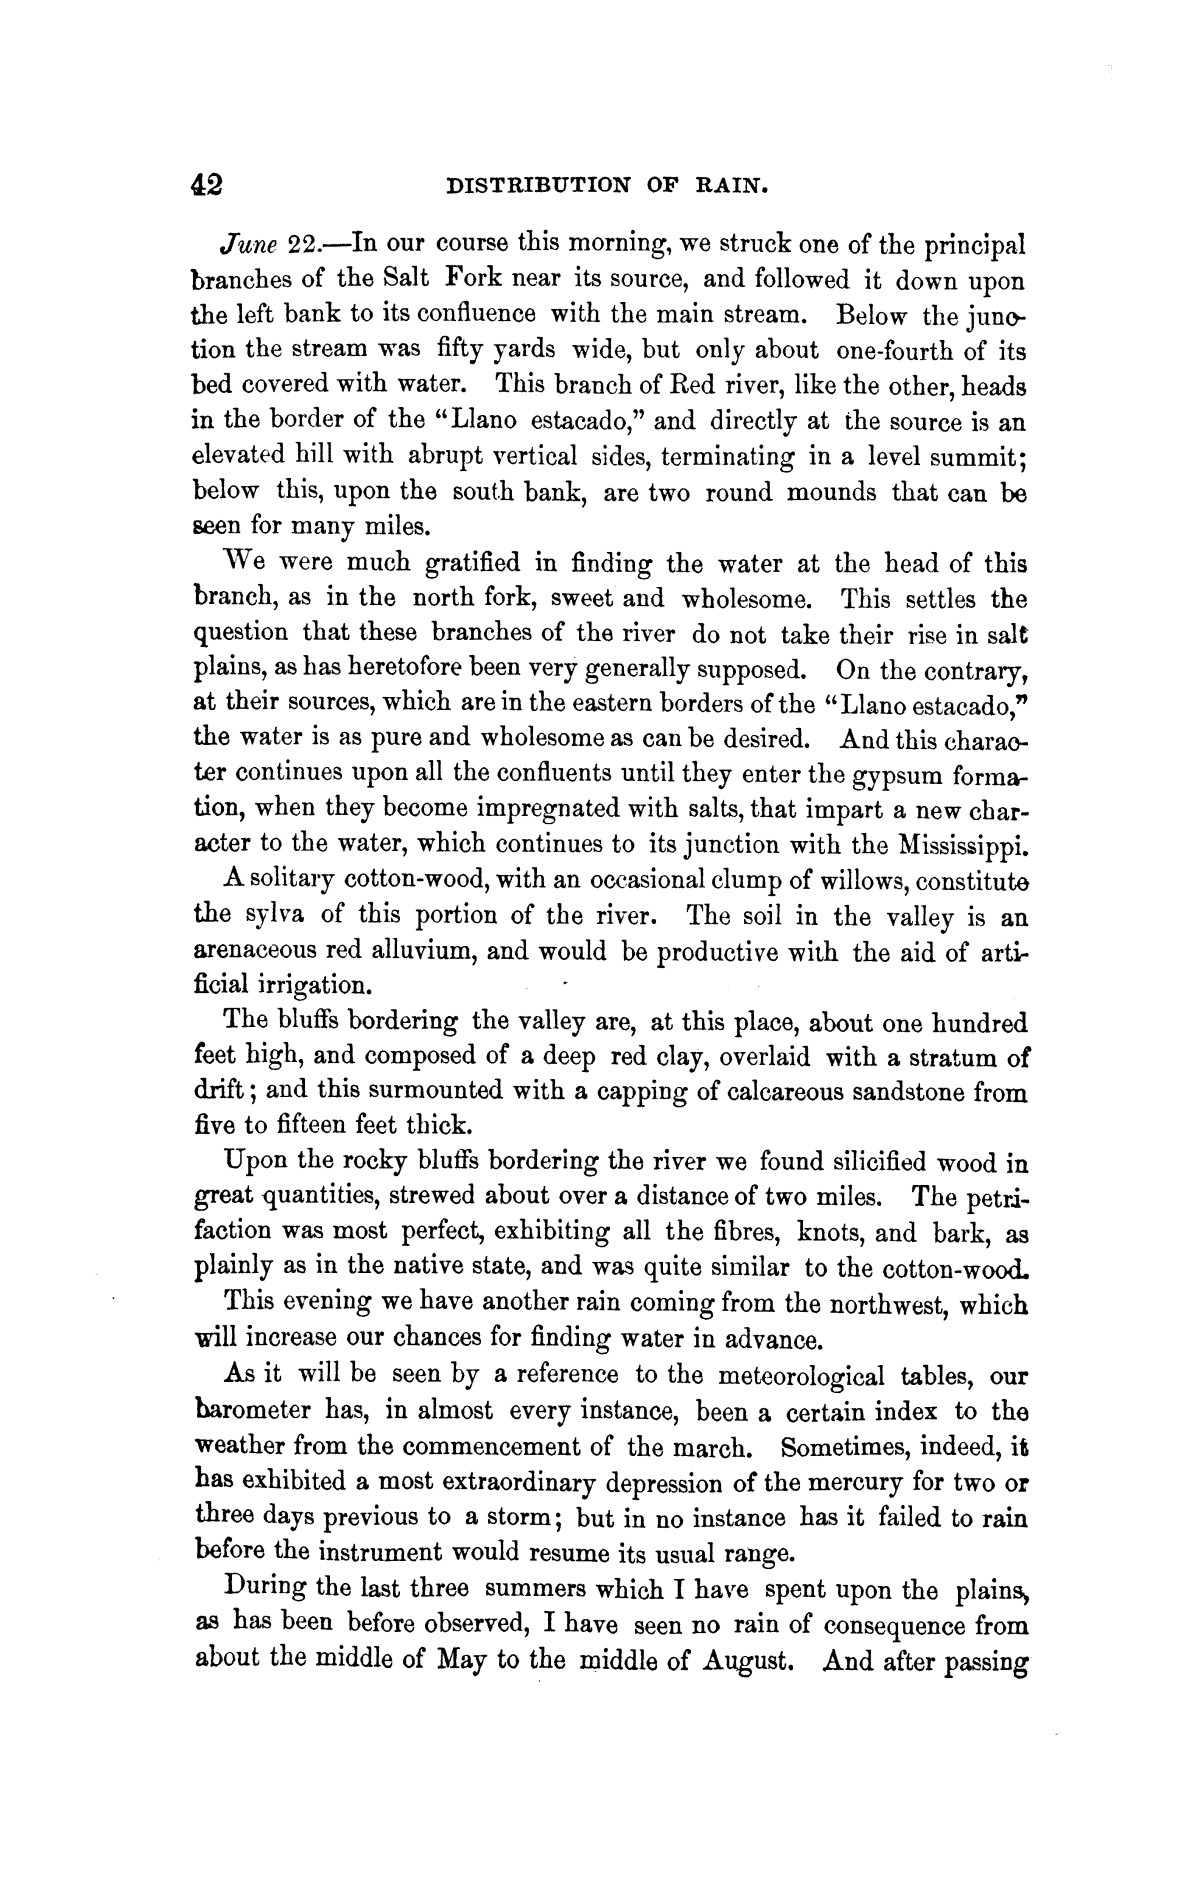 Exploration of the Red River of Louisiana, in the year 1852 / by Randolph B. Marcy ; assisted by George B. McClellan.                                                                                                      [Sequence #]: 58 of 368